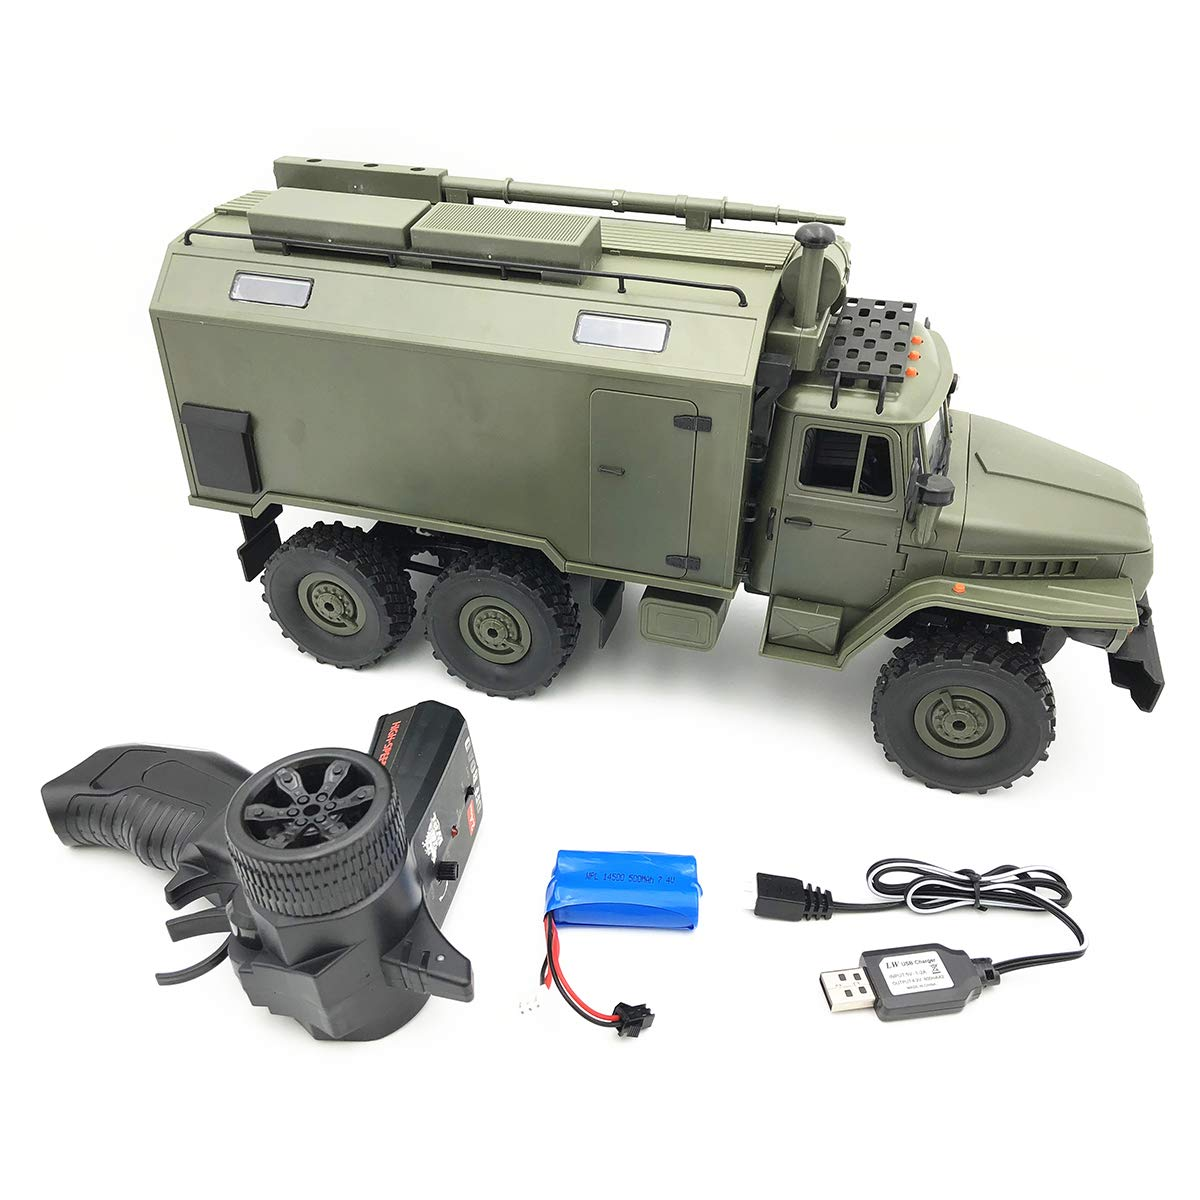 Rtr Type Ocamo Wpl B36 Ural 1 16 2.4G 6Wd Rc Car Military Truck Rock Crawler Command Communication Vehicle Kit Assembly Type